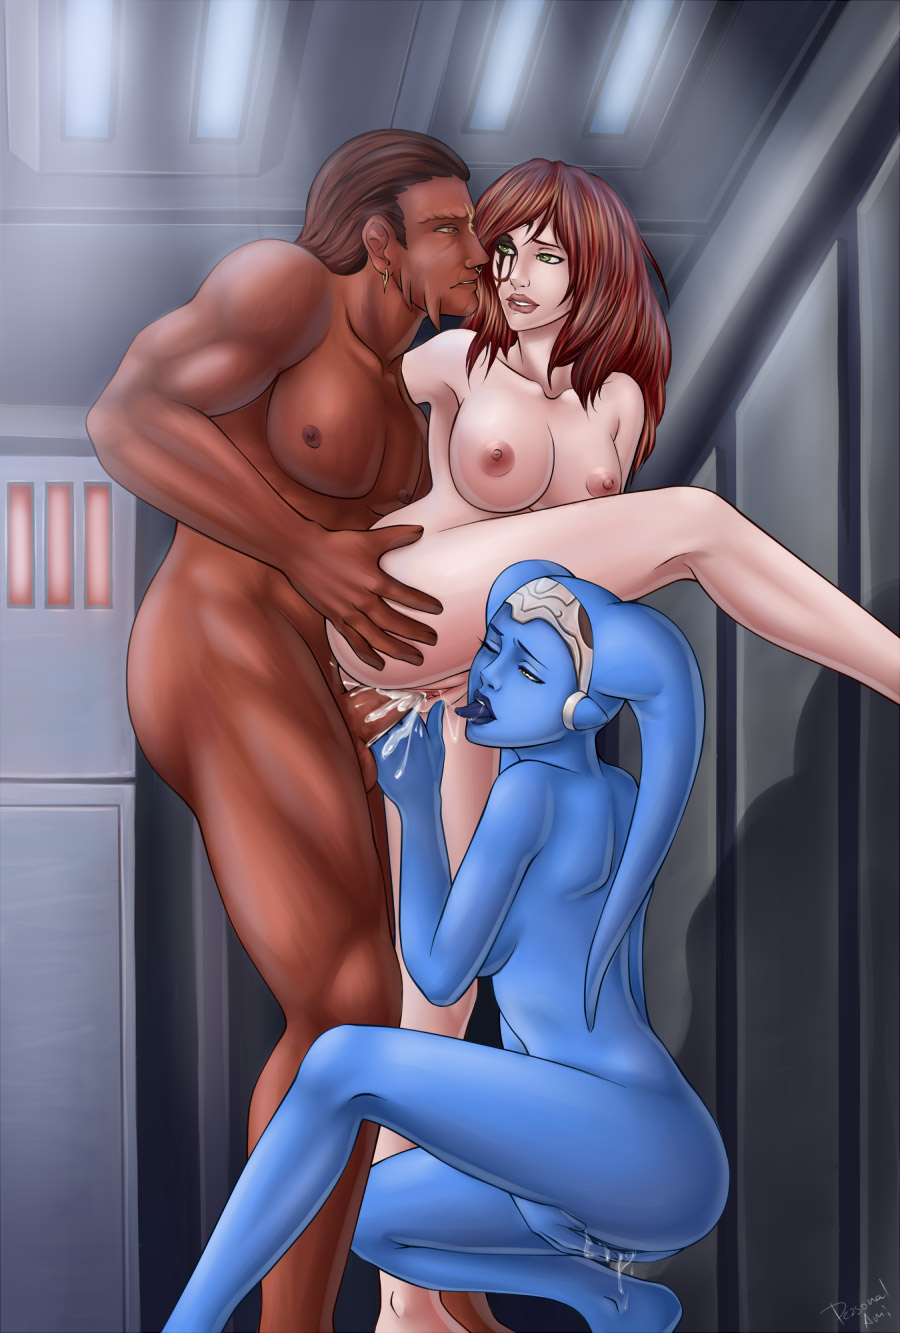 Kotor hentai hame hentai galleries